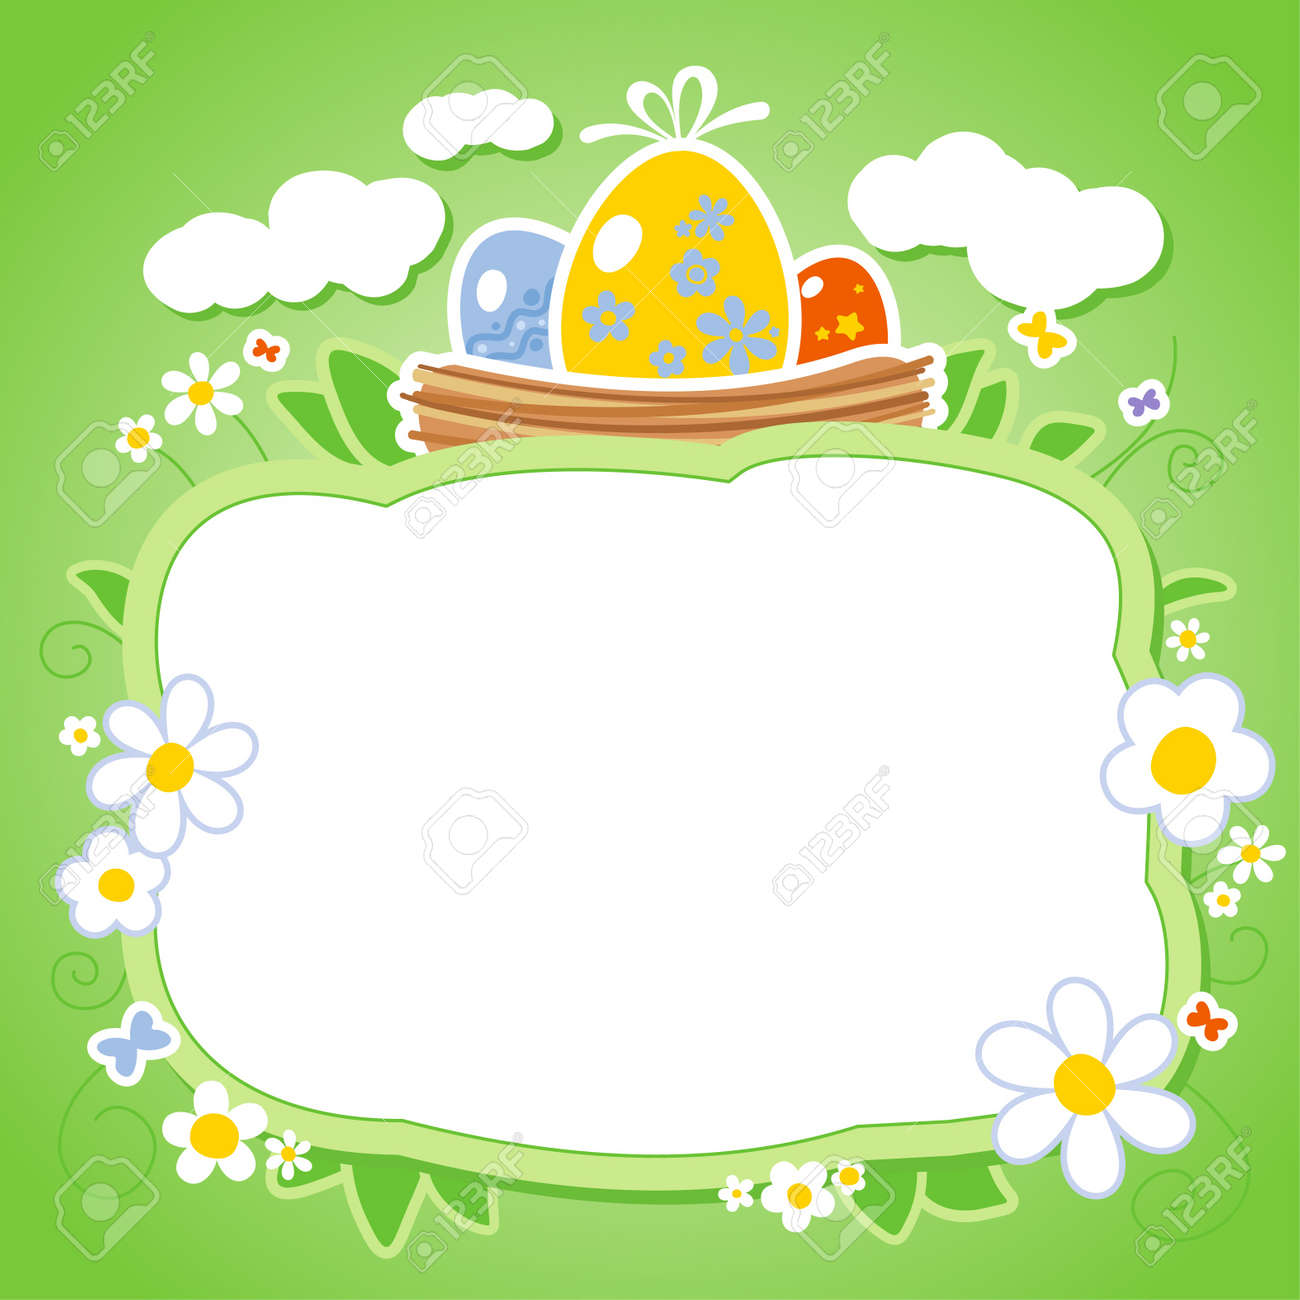 Easter Card Template With Frame For Photo Or Text Royalty Free – Easter Card Template